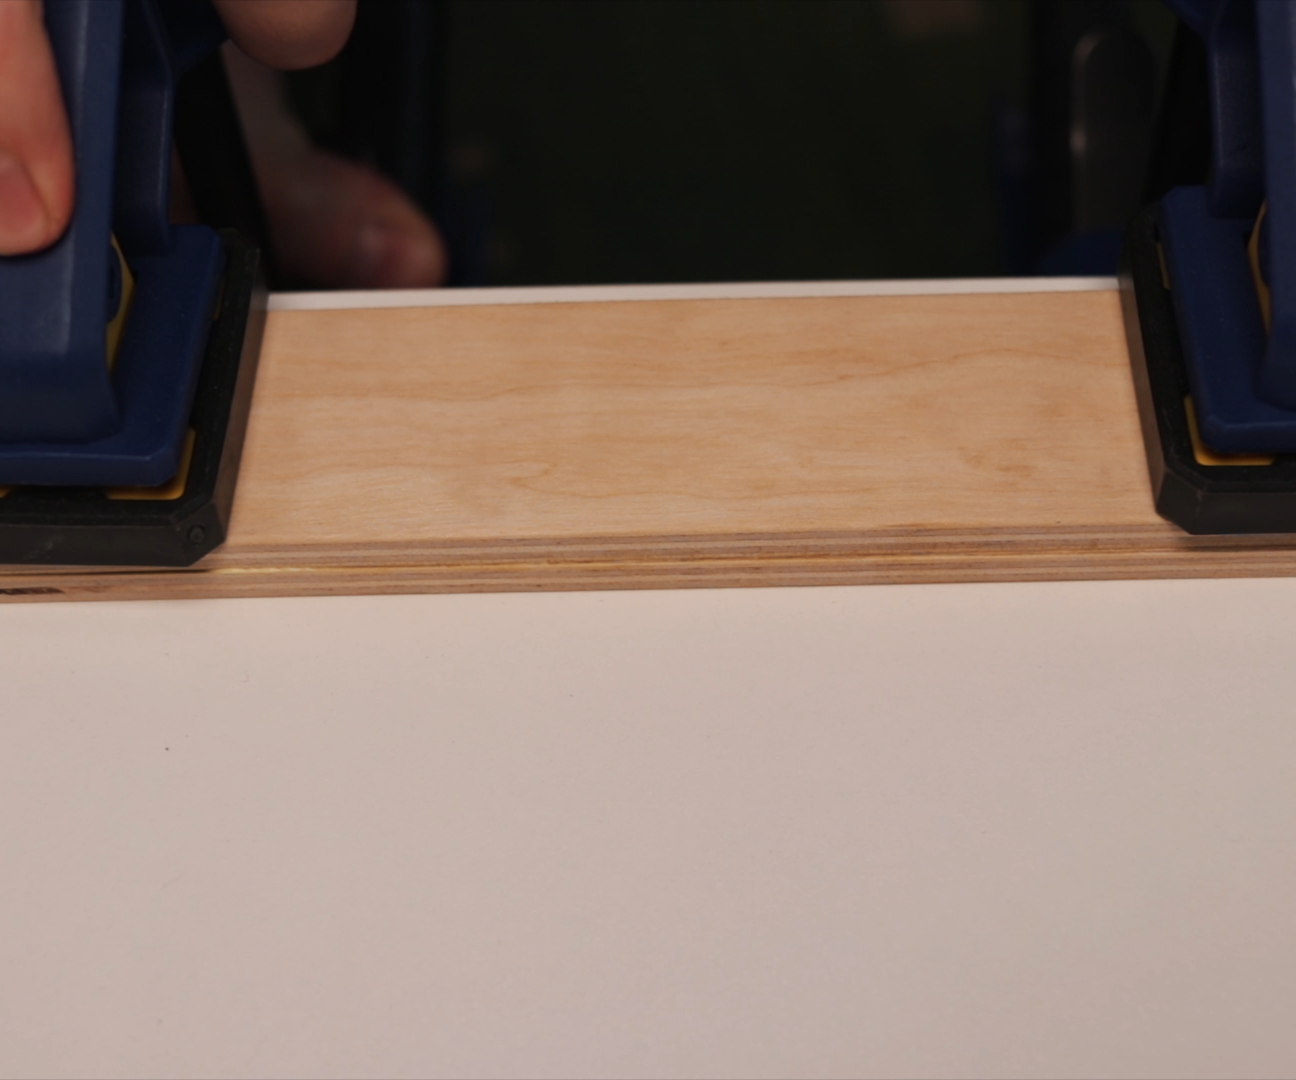 Picture of Gluing Back Side Part of the Stand